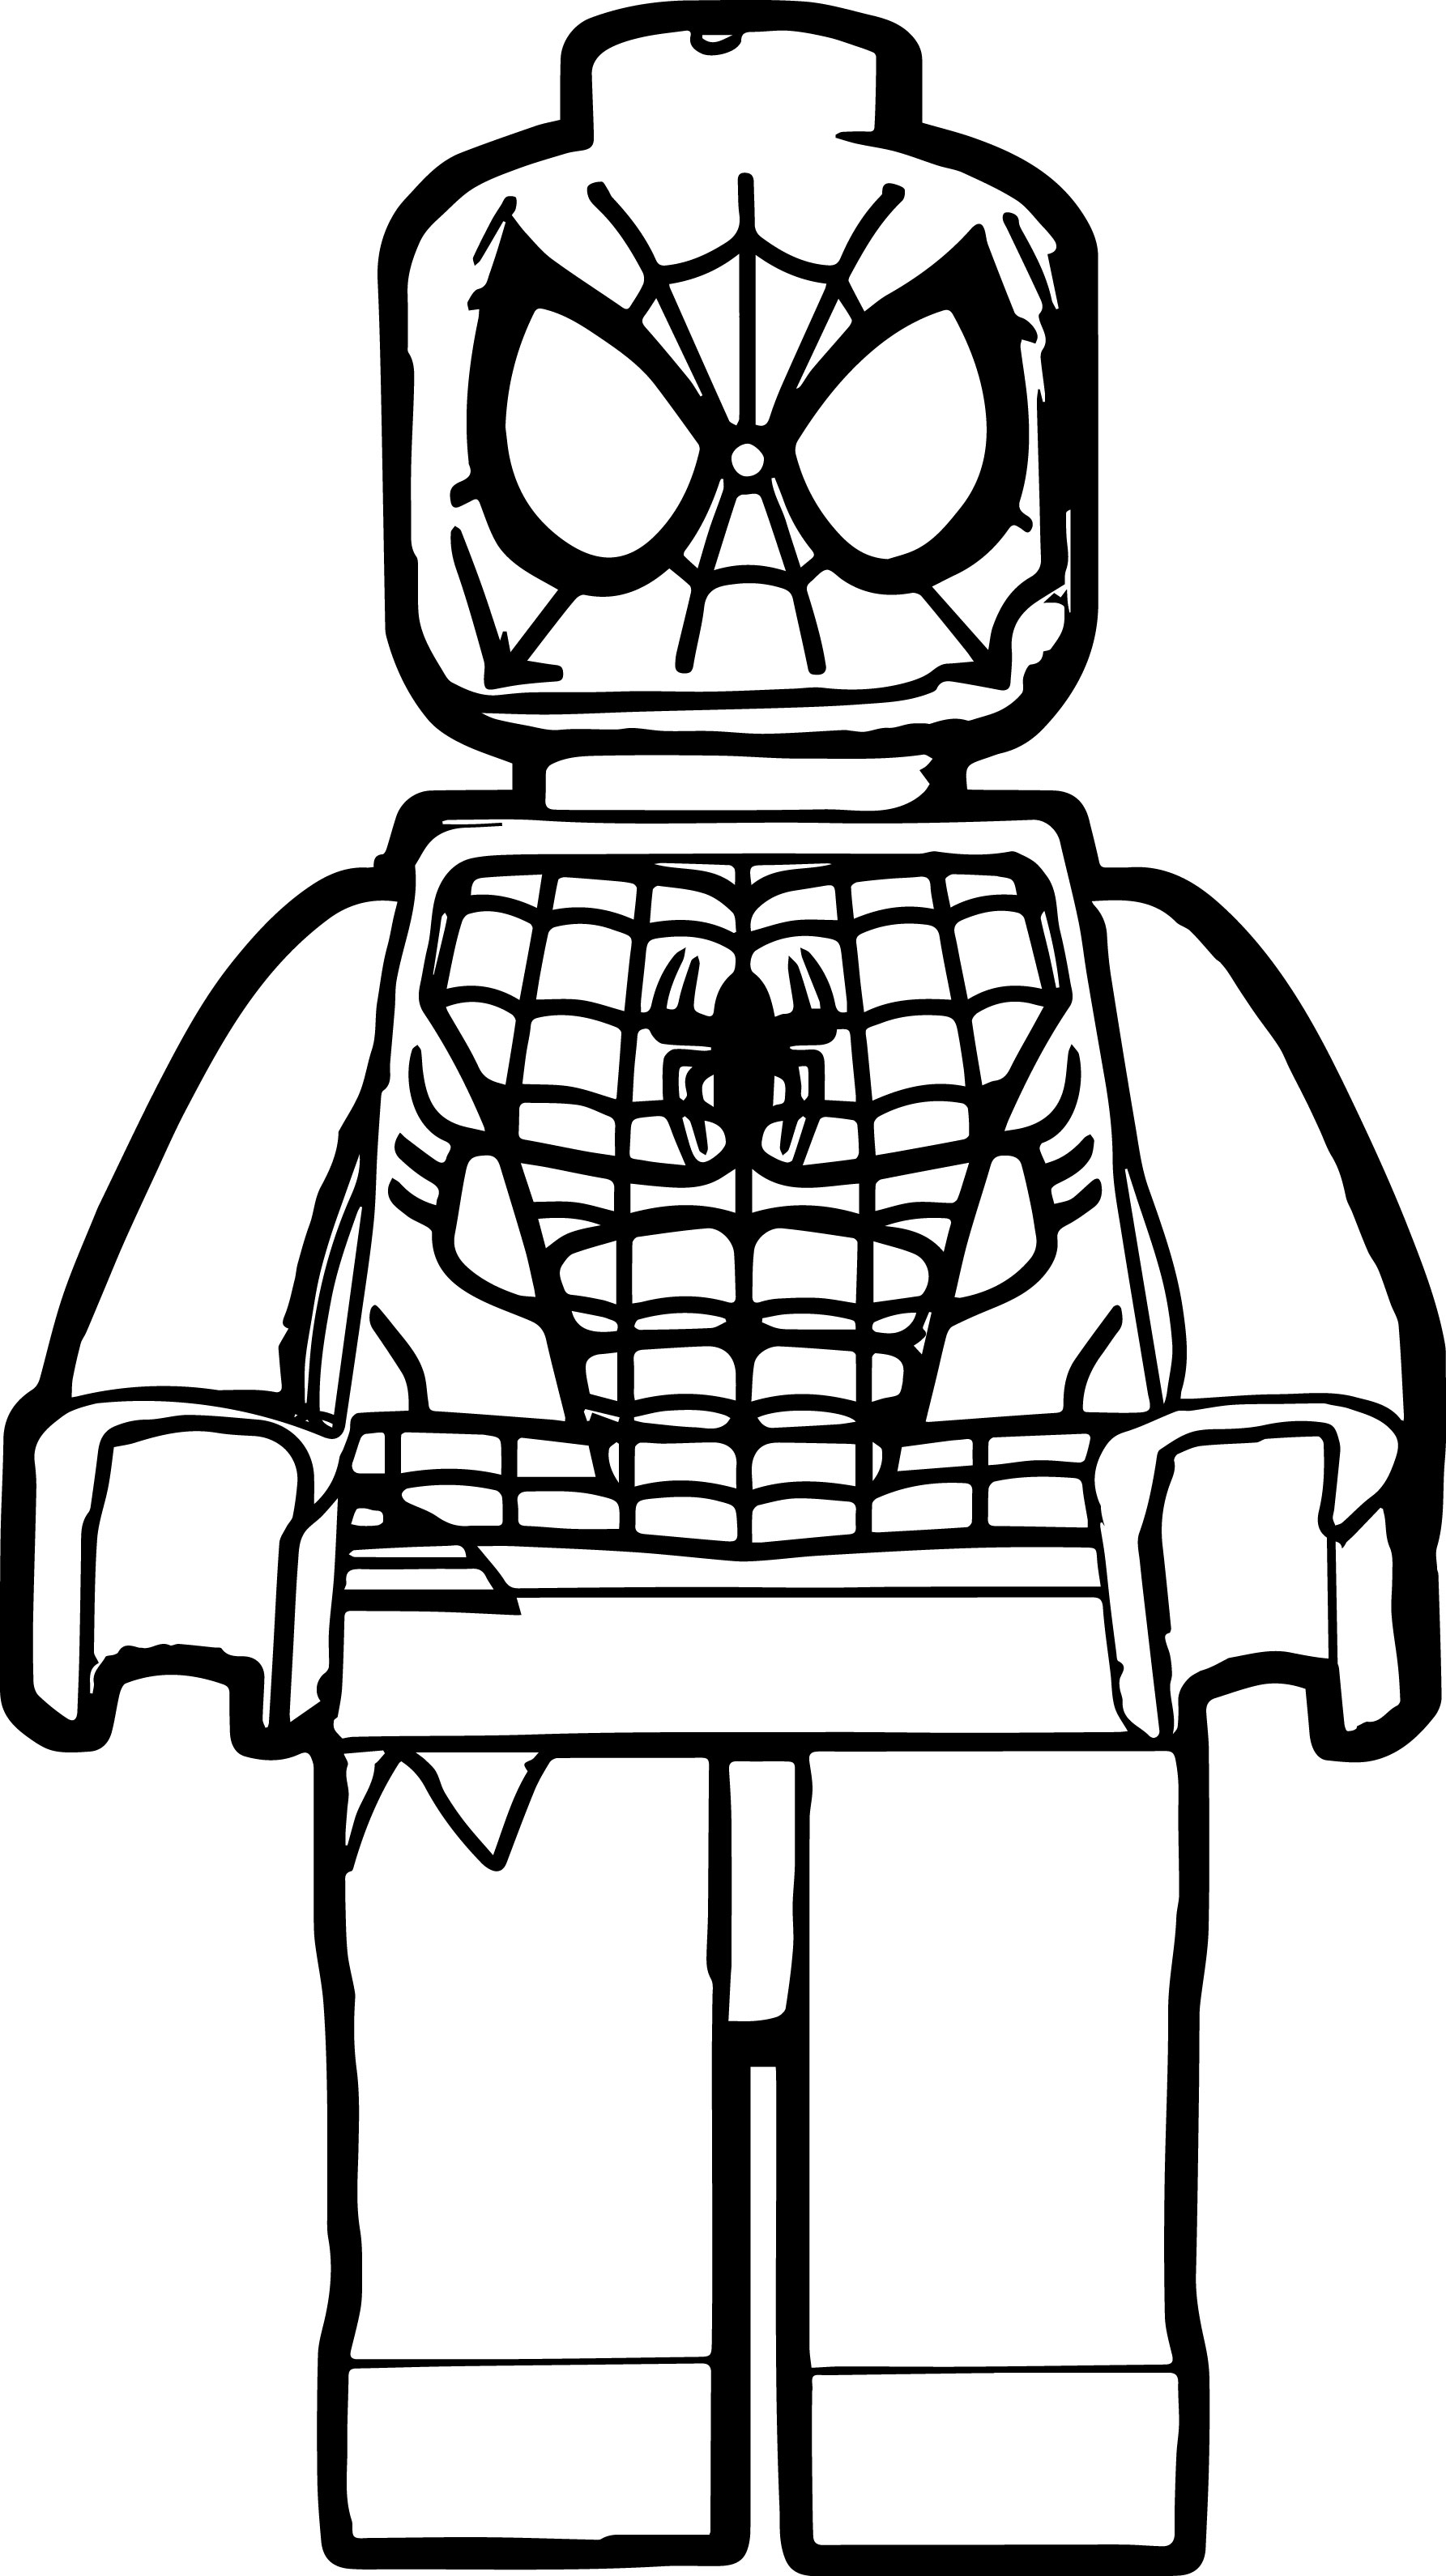 Spider Man Lego Coloring Page